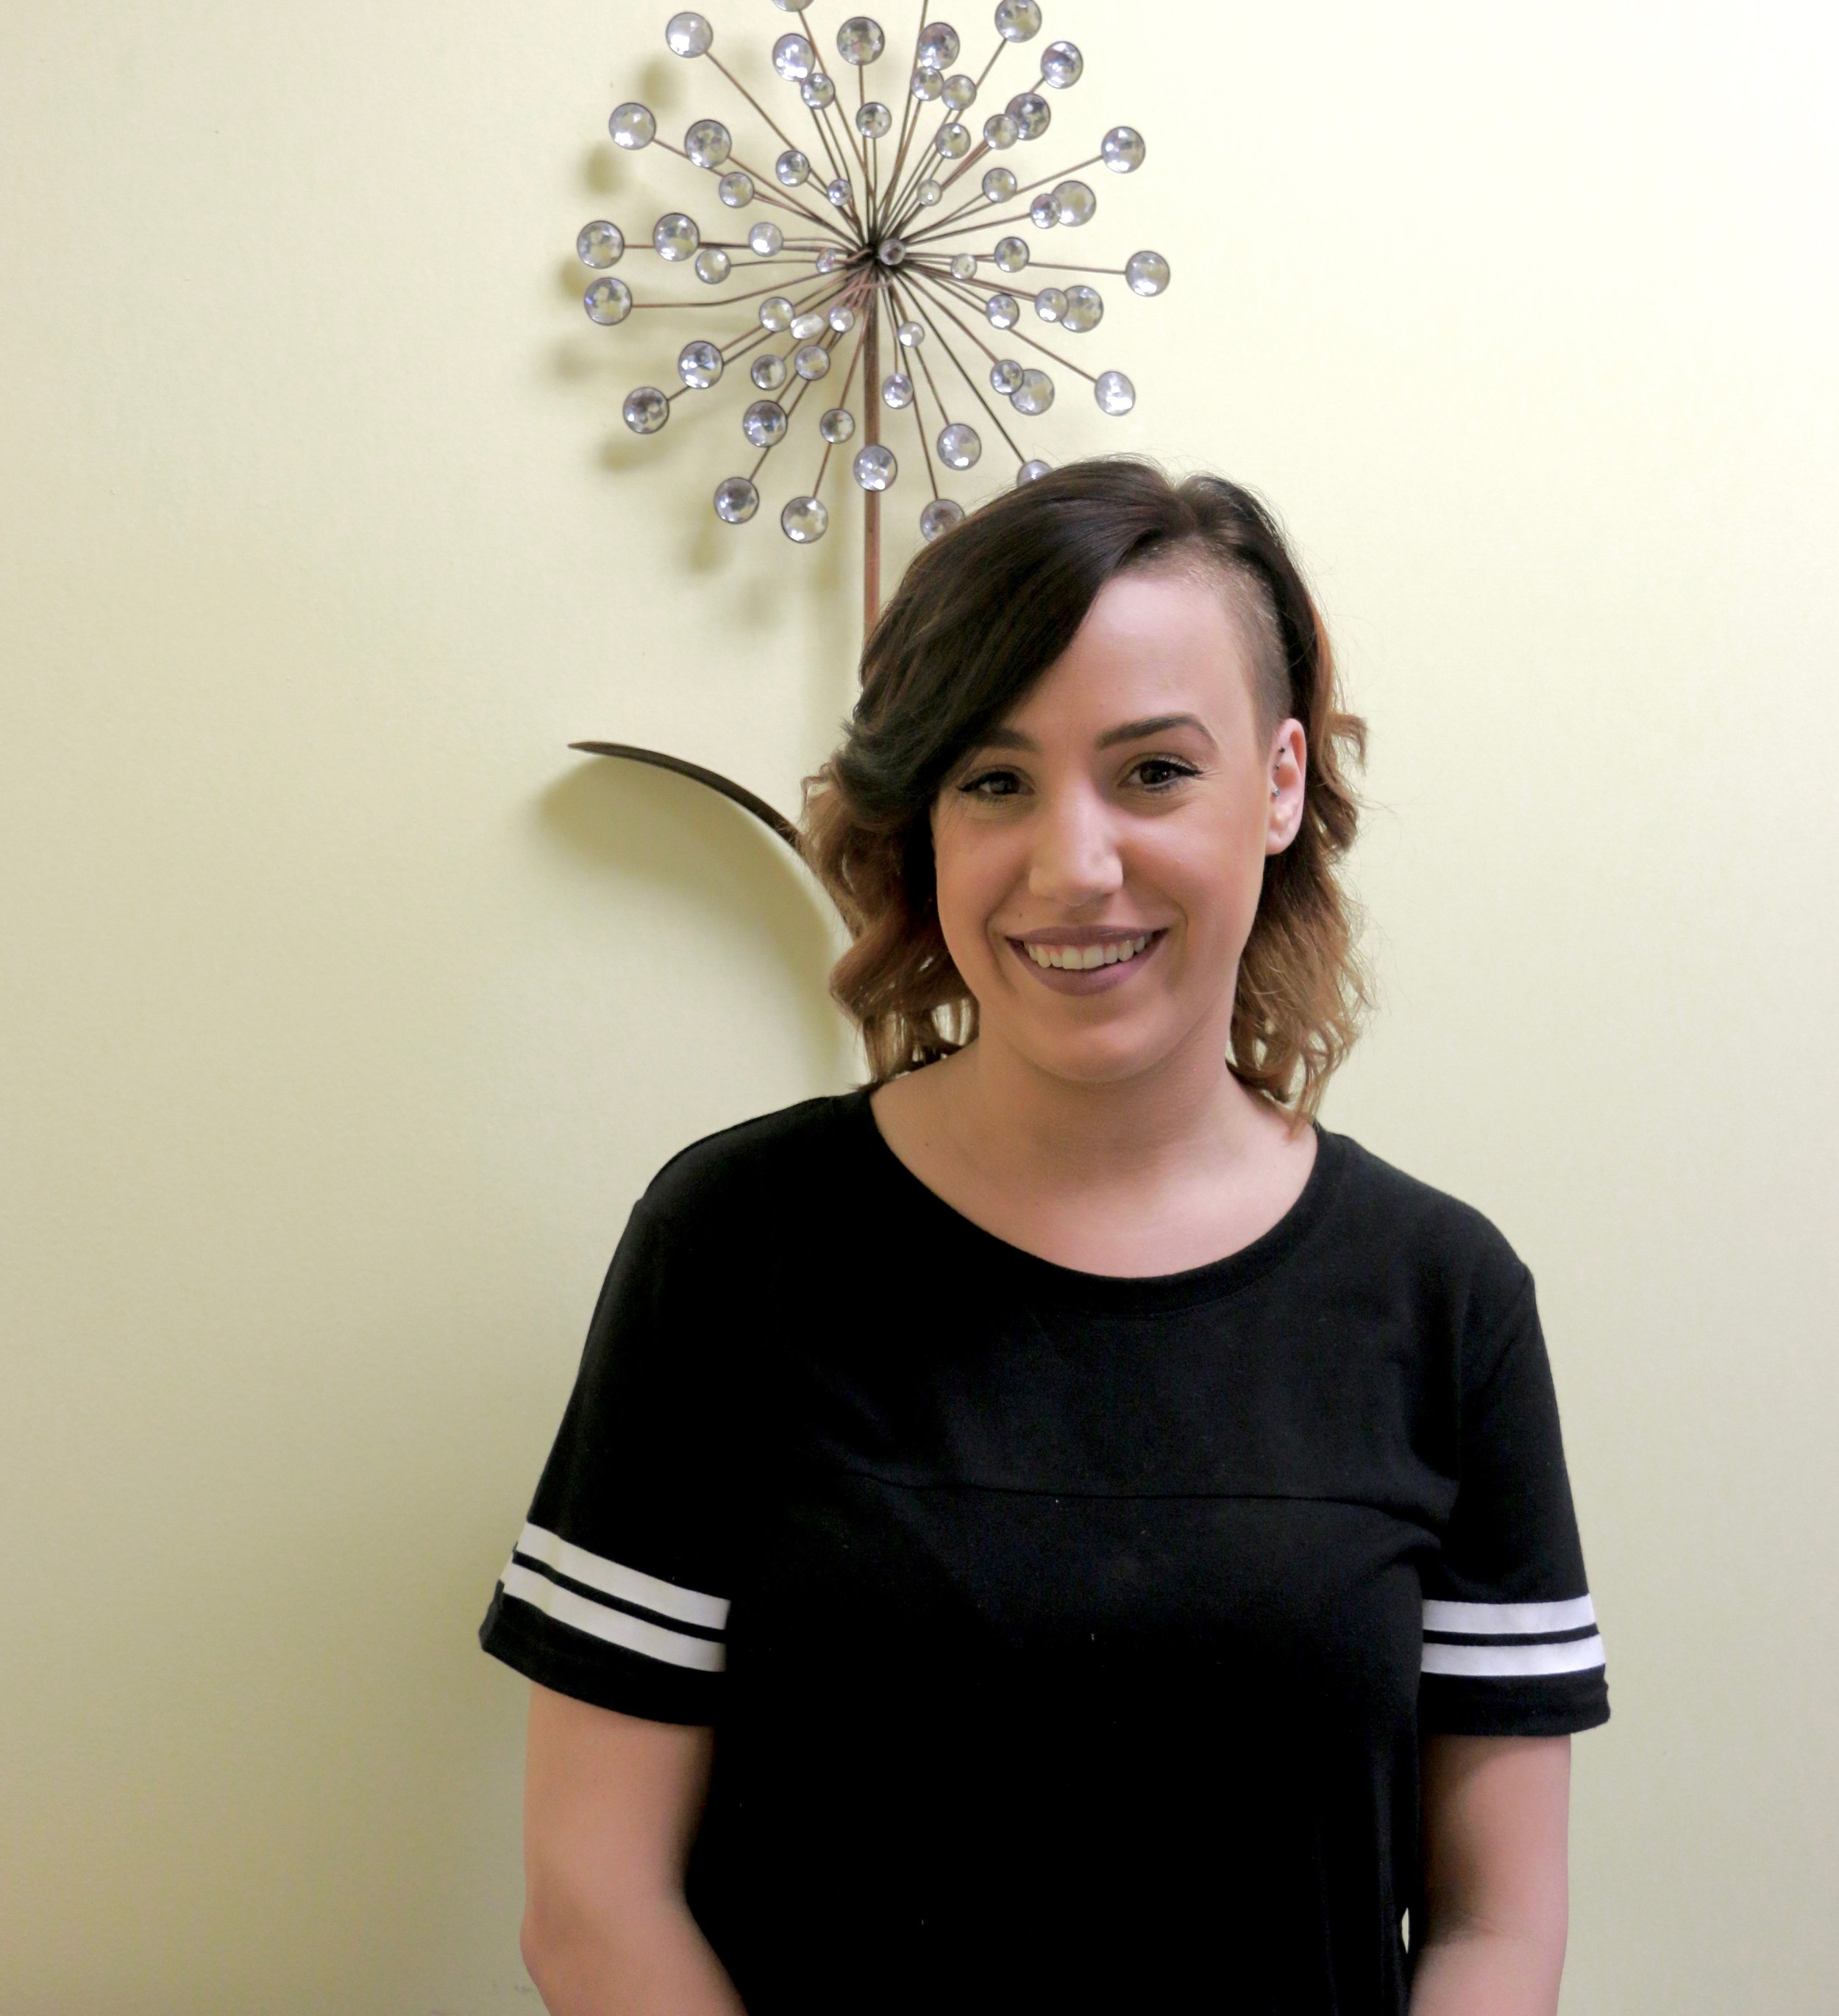 Carly   - Partner - ESTHETICIAN -  With an eye for the natural beauty in everything and everyone, her amazing attention to detail will leave you with perfect skin and nails. Carly will also add length and beauty to your lashes, expertly applying lash extensions that will make your eyes shine!